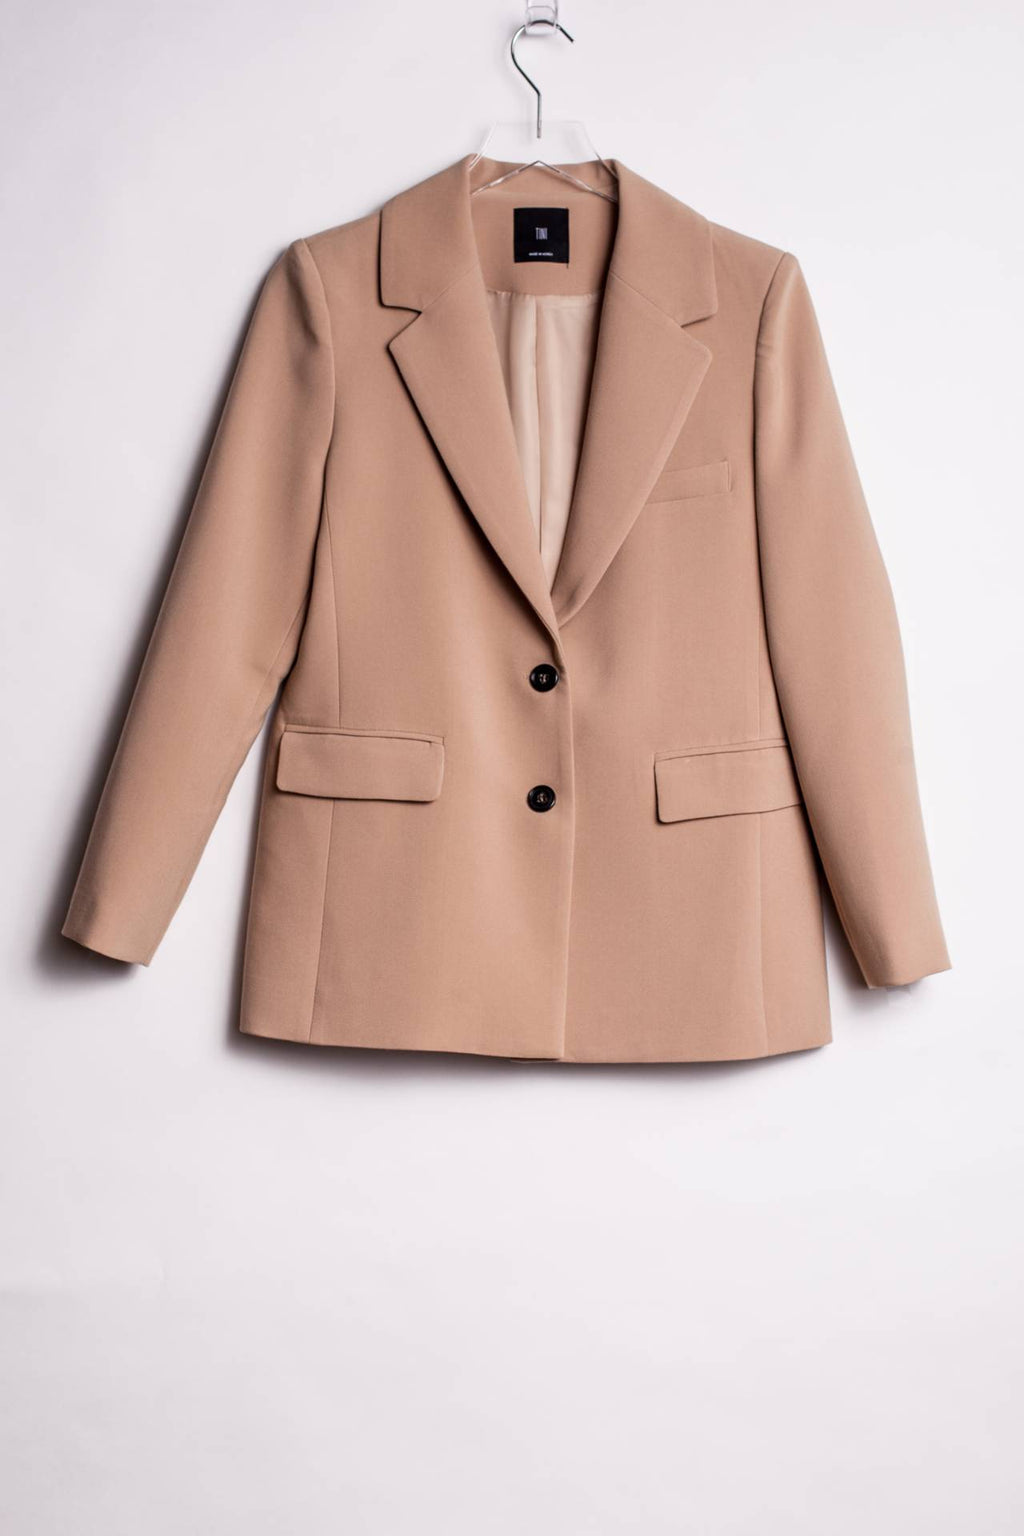 VENICE BLAZER, BEIGE - Trendy Fox Boutique